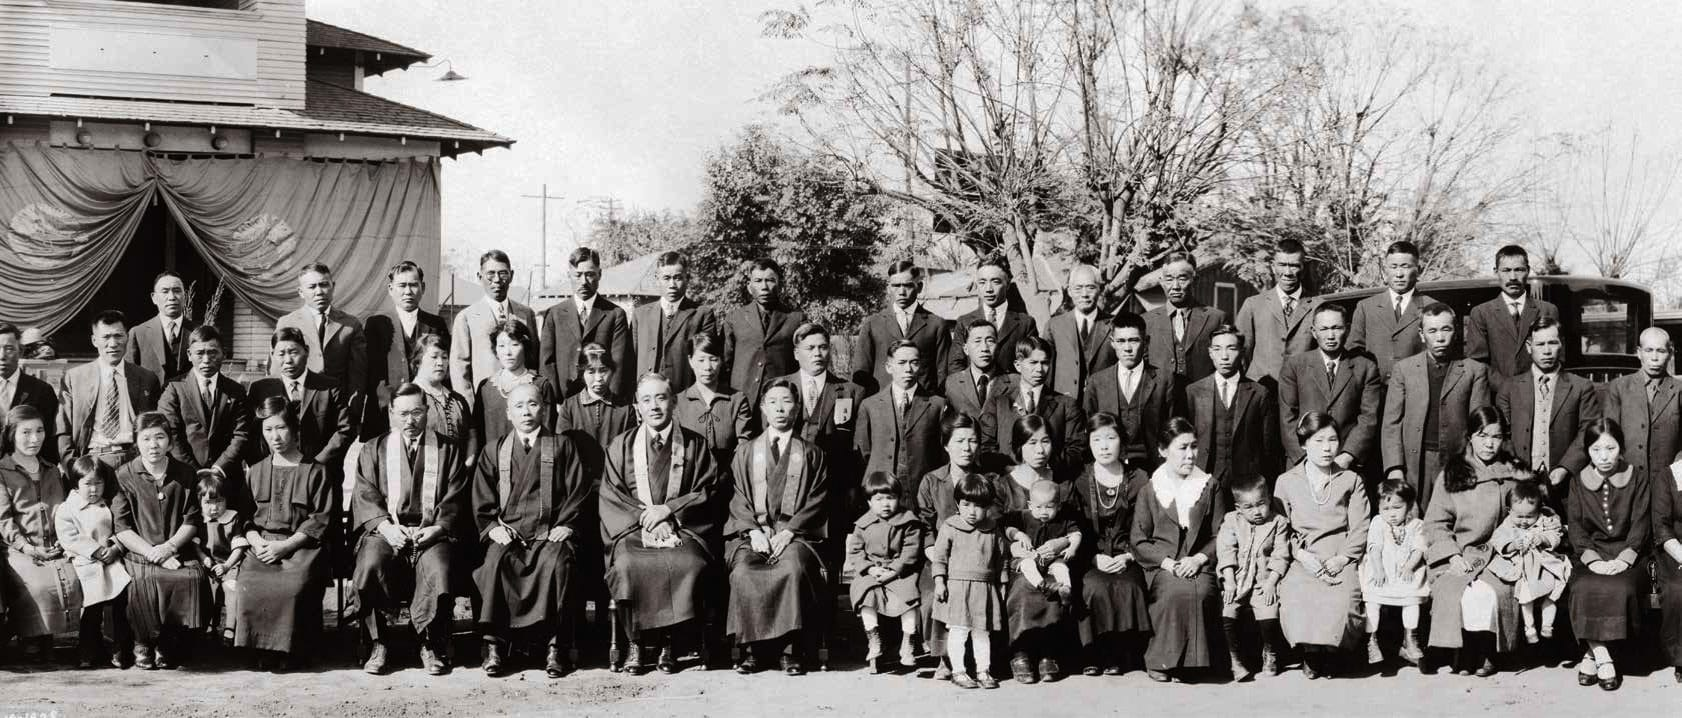 The congregation of Bakersfield Buddhist Church in Bakersfield, California, November 19, 1925. Photo courtesy the Japanese American National Museum (Buddhist Churches of America Archives, 99.201)